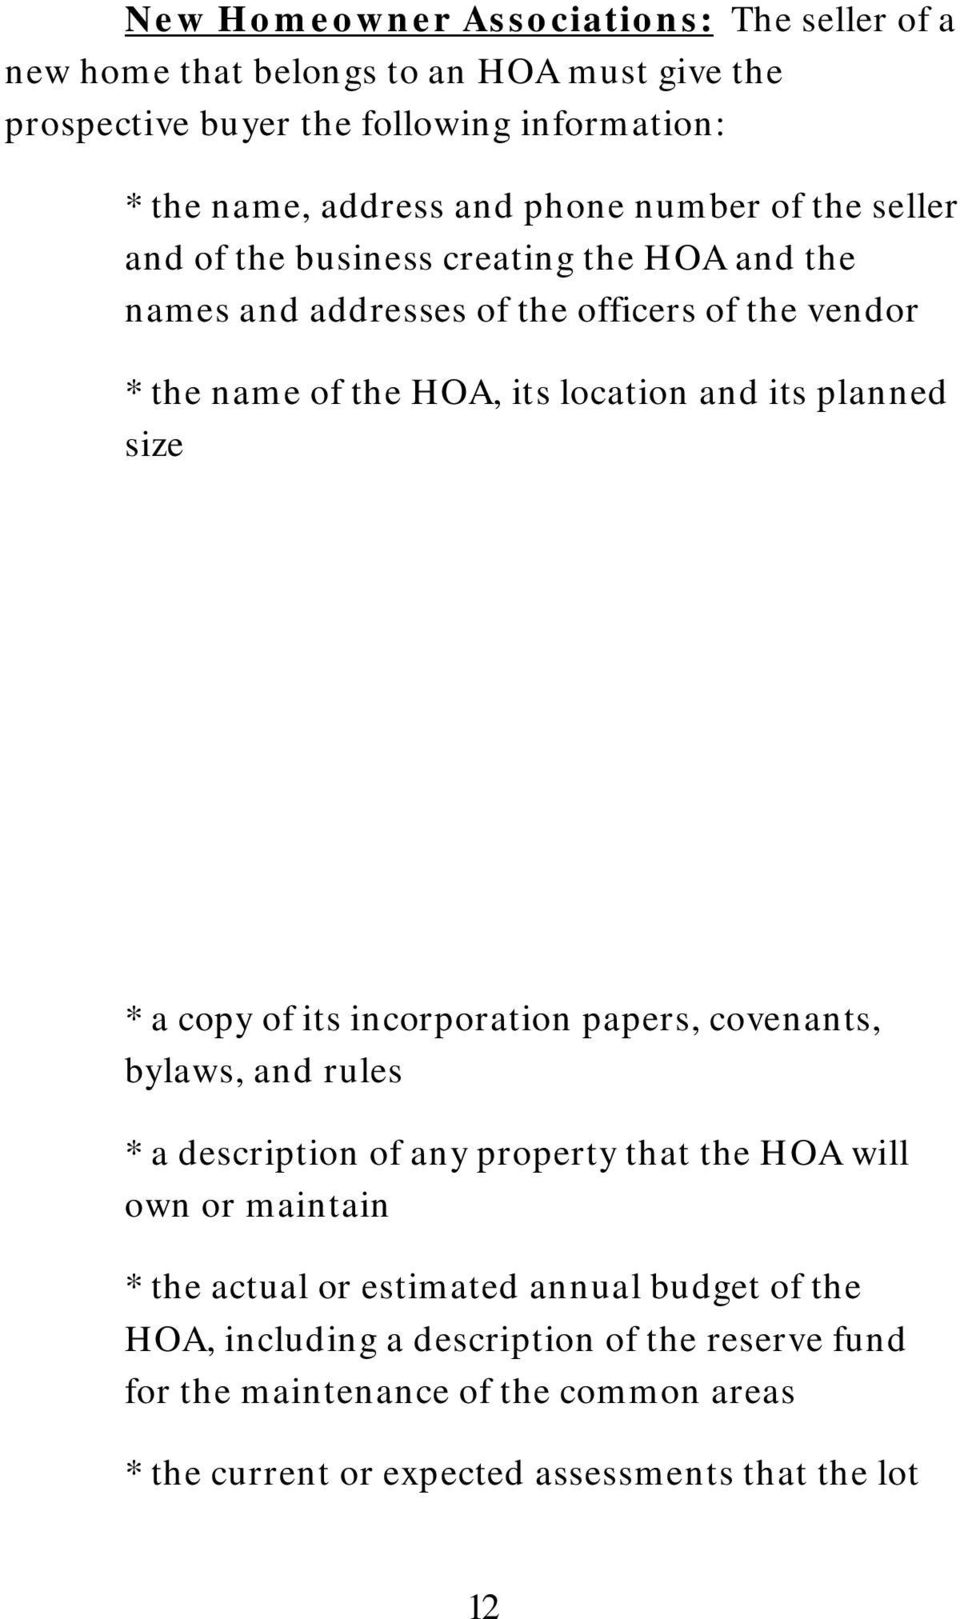 planned size * a copy of its incorporation papers, covenants, bylaws, and rules * a description of any property that the HOA will own or maintain * the actual or